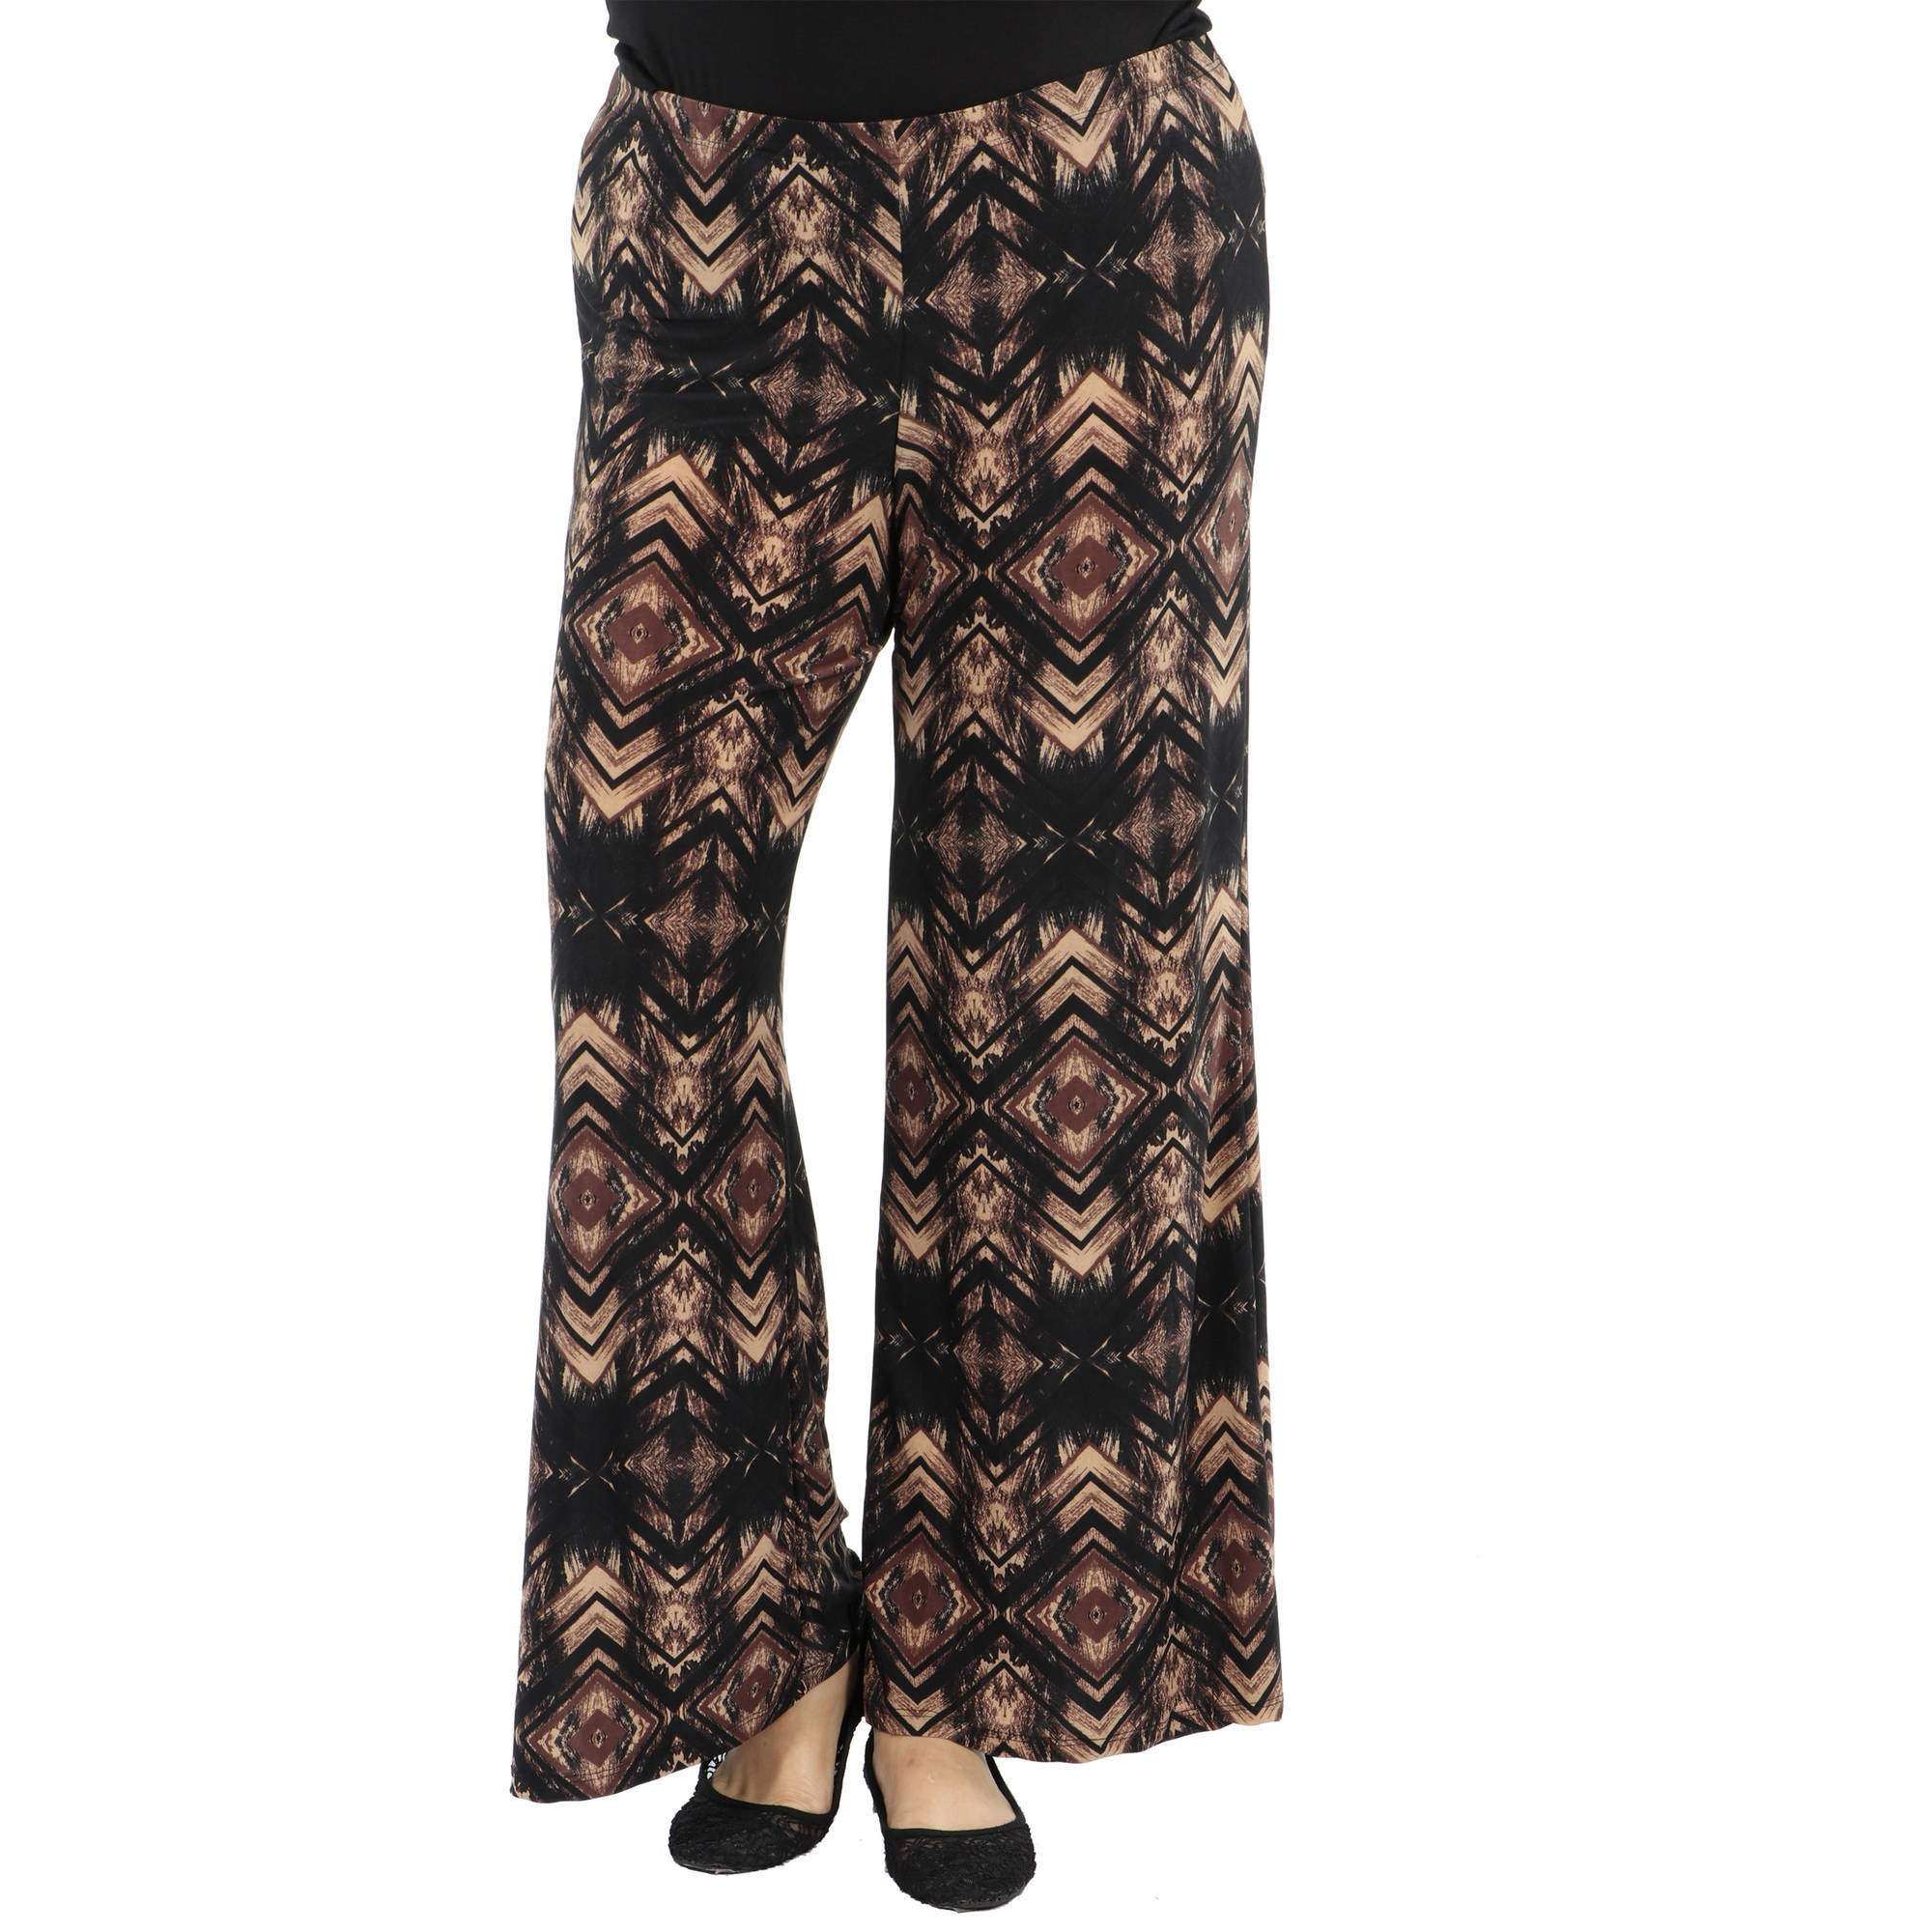 24/7 Comfort Apparel Women's Plus Glamour Goes Anywhere Wide Leg Pants